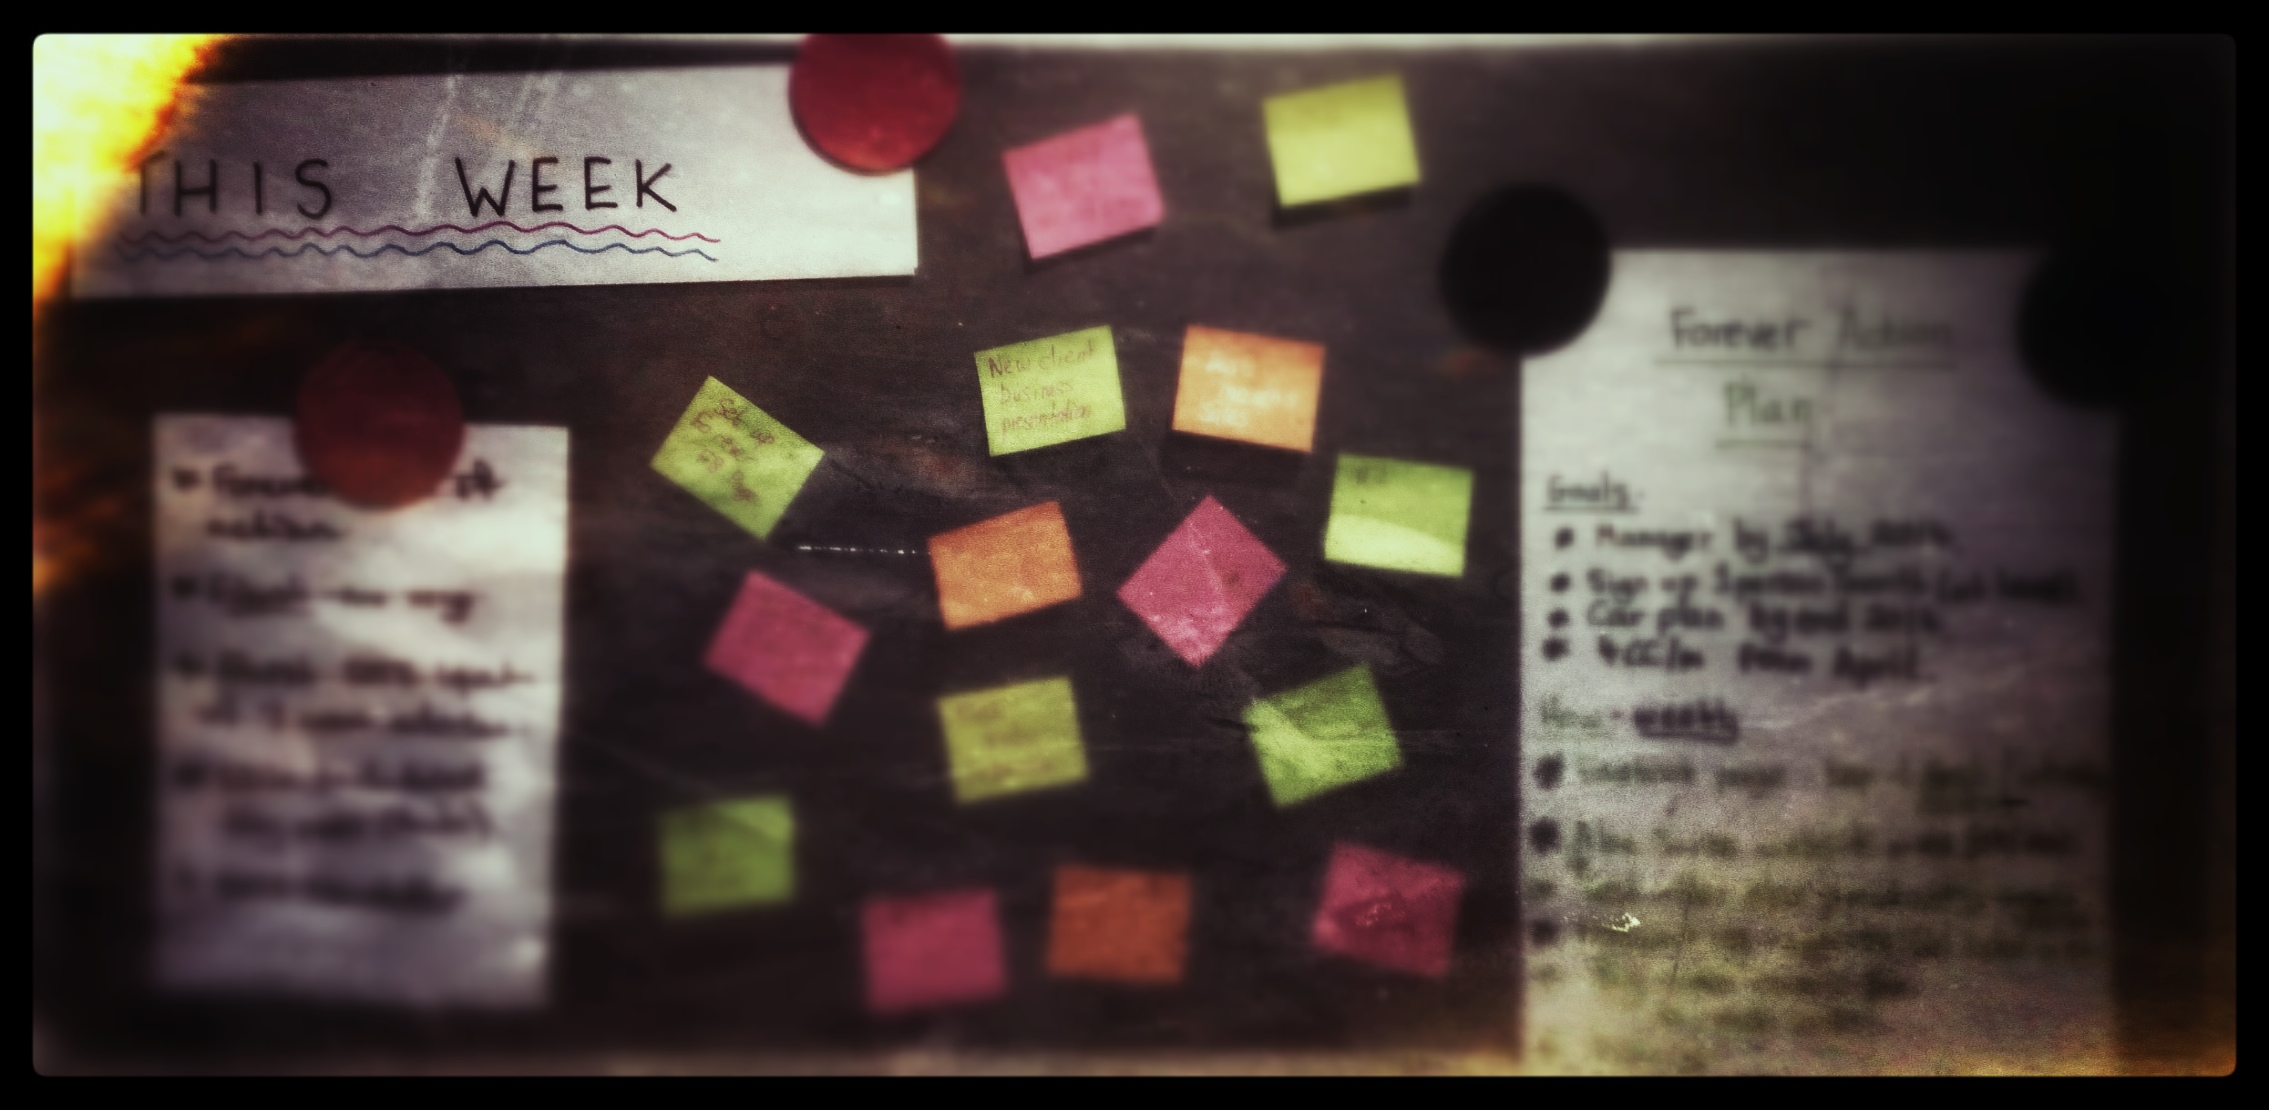 To do list notice board